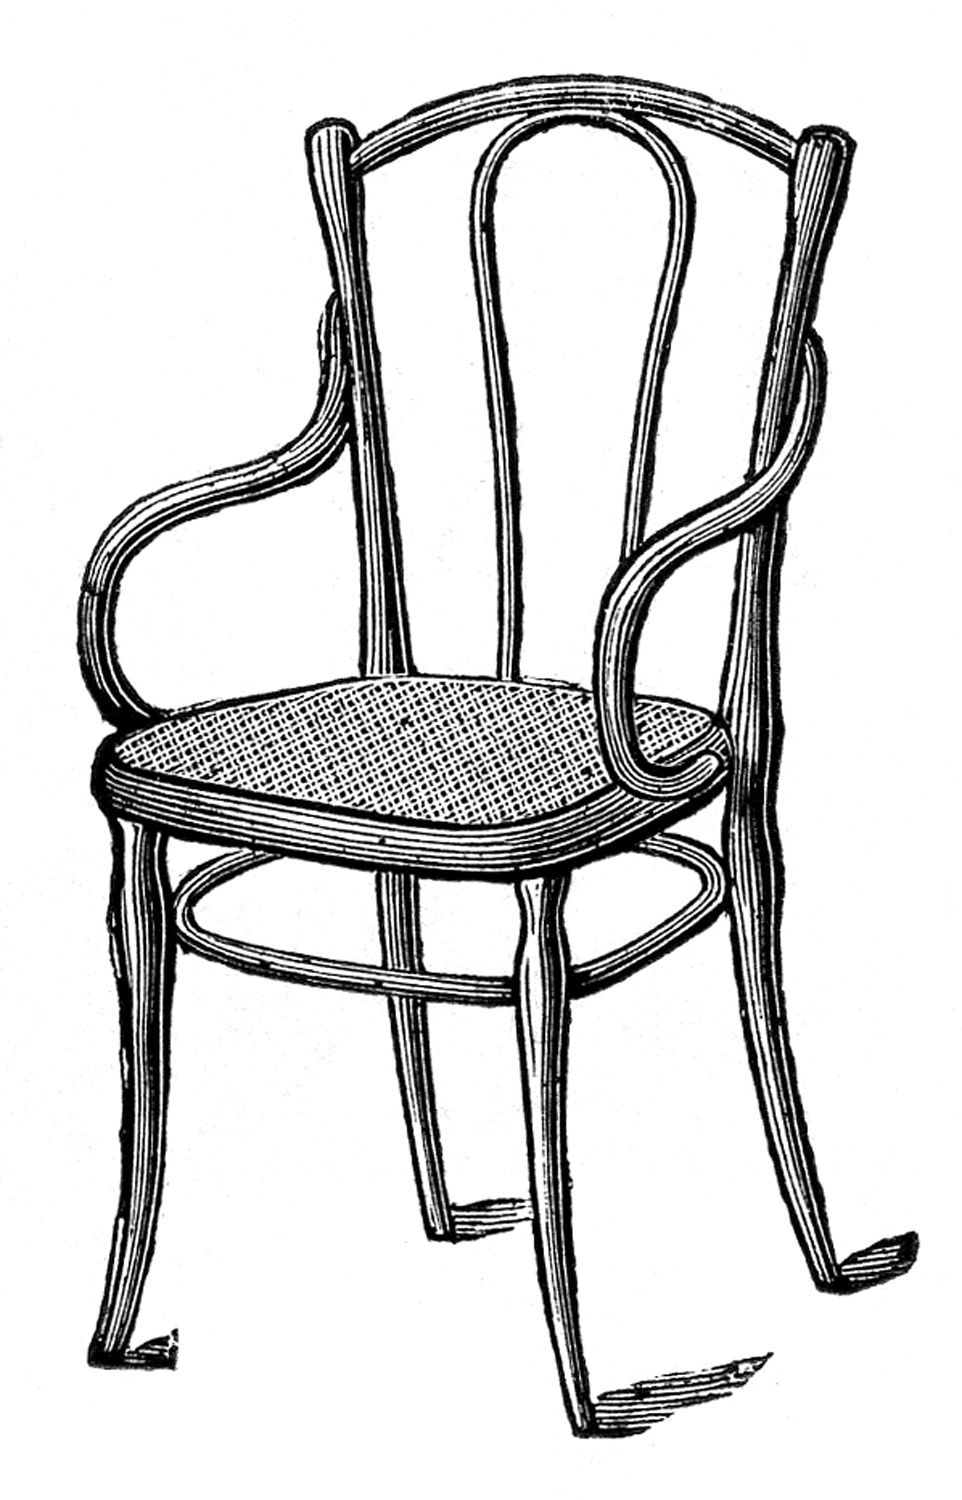 Antique Images Caned Bentwood Chairs The Graphics Fairy : Caned Chair Vintage Image GraphicsFairy21 from thegraphicsfairy.com size 962 x 1500 jpeg 234kB